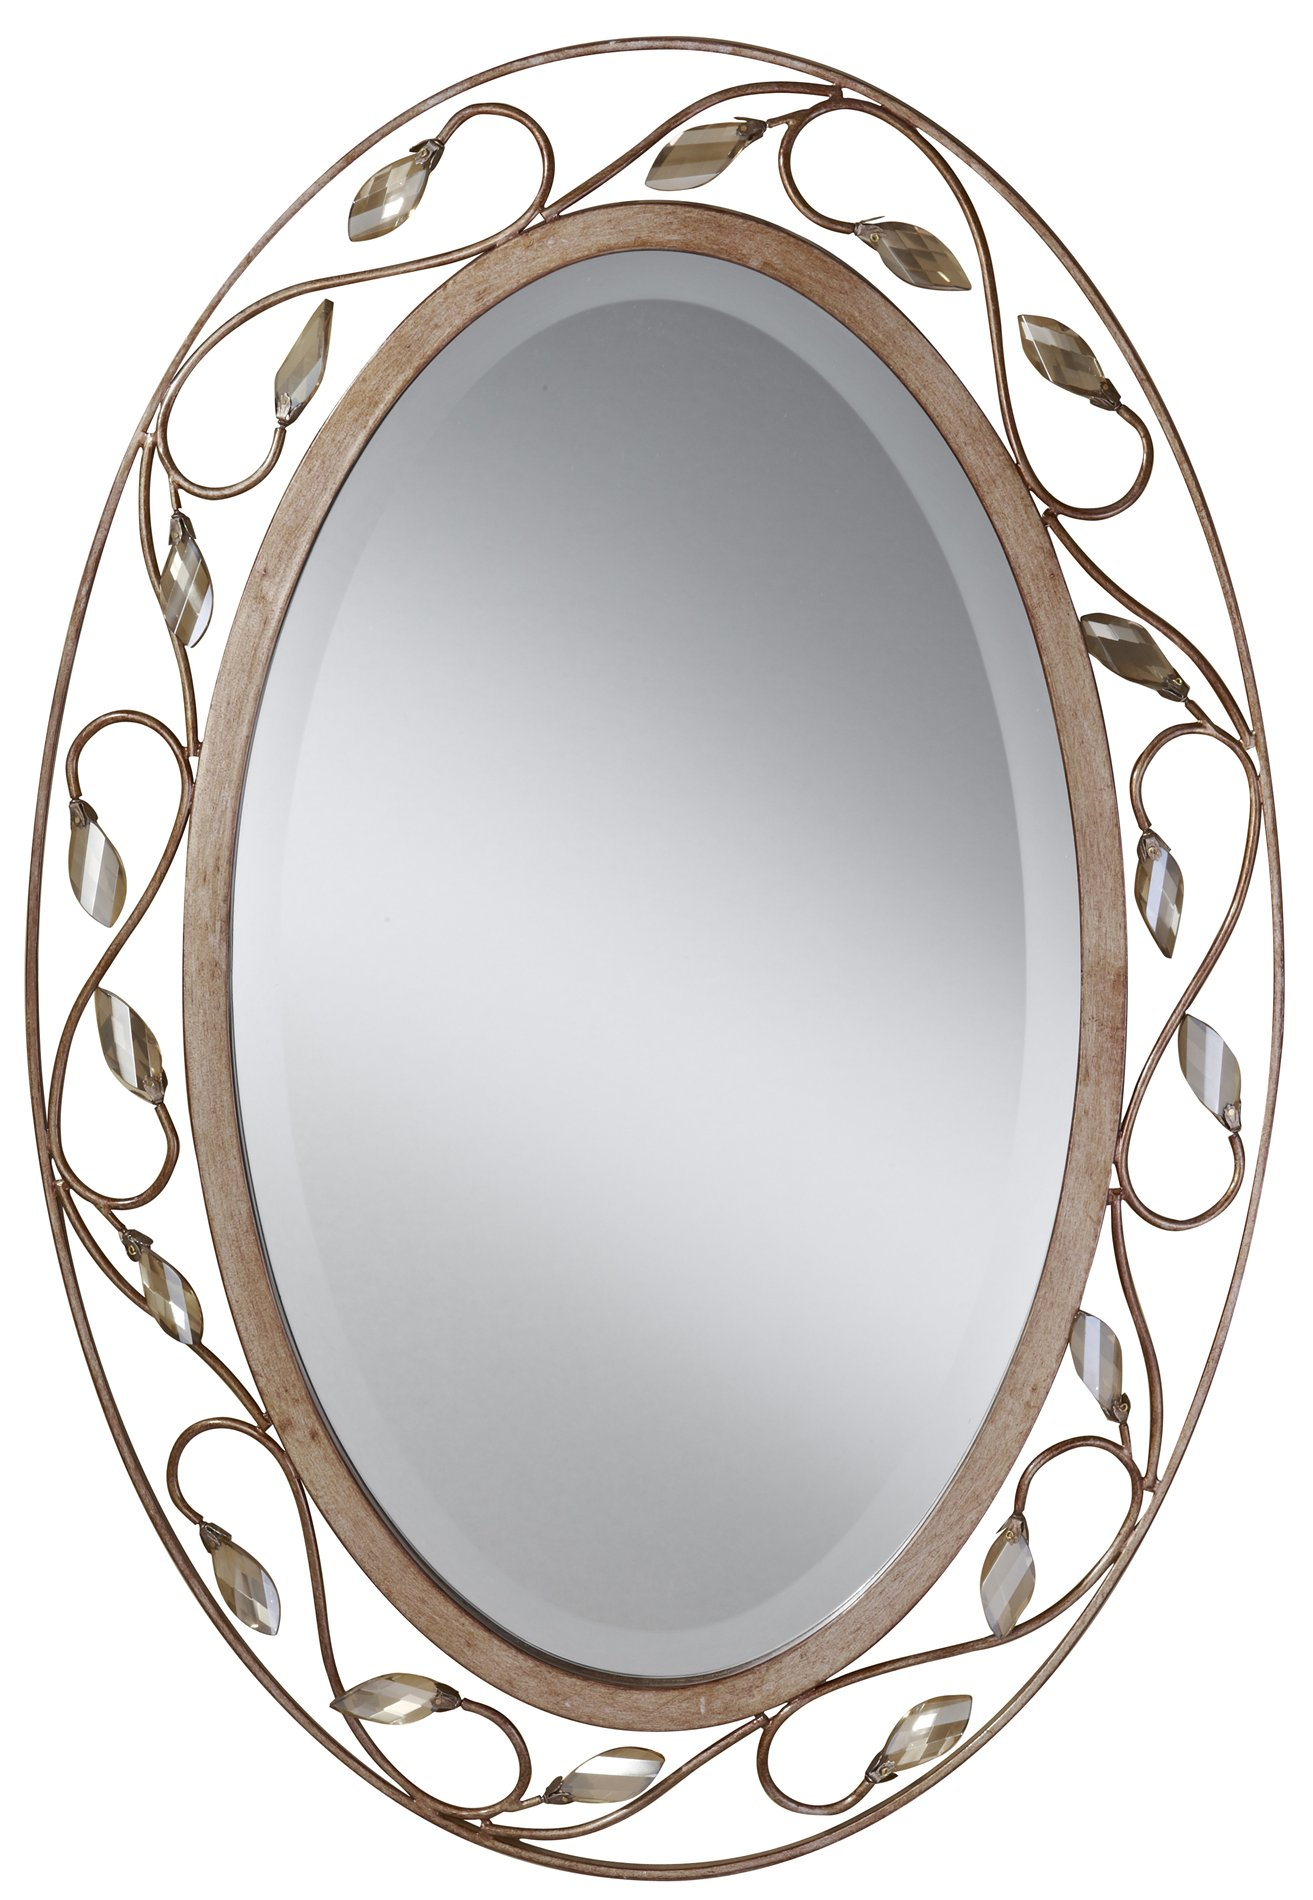 Murray Feiss Mr1109ars Priscilla Traditional Oval Mirror Mrf Mr1109ars